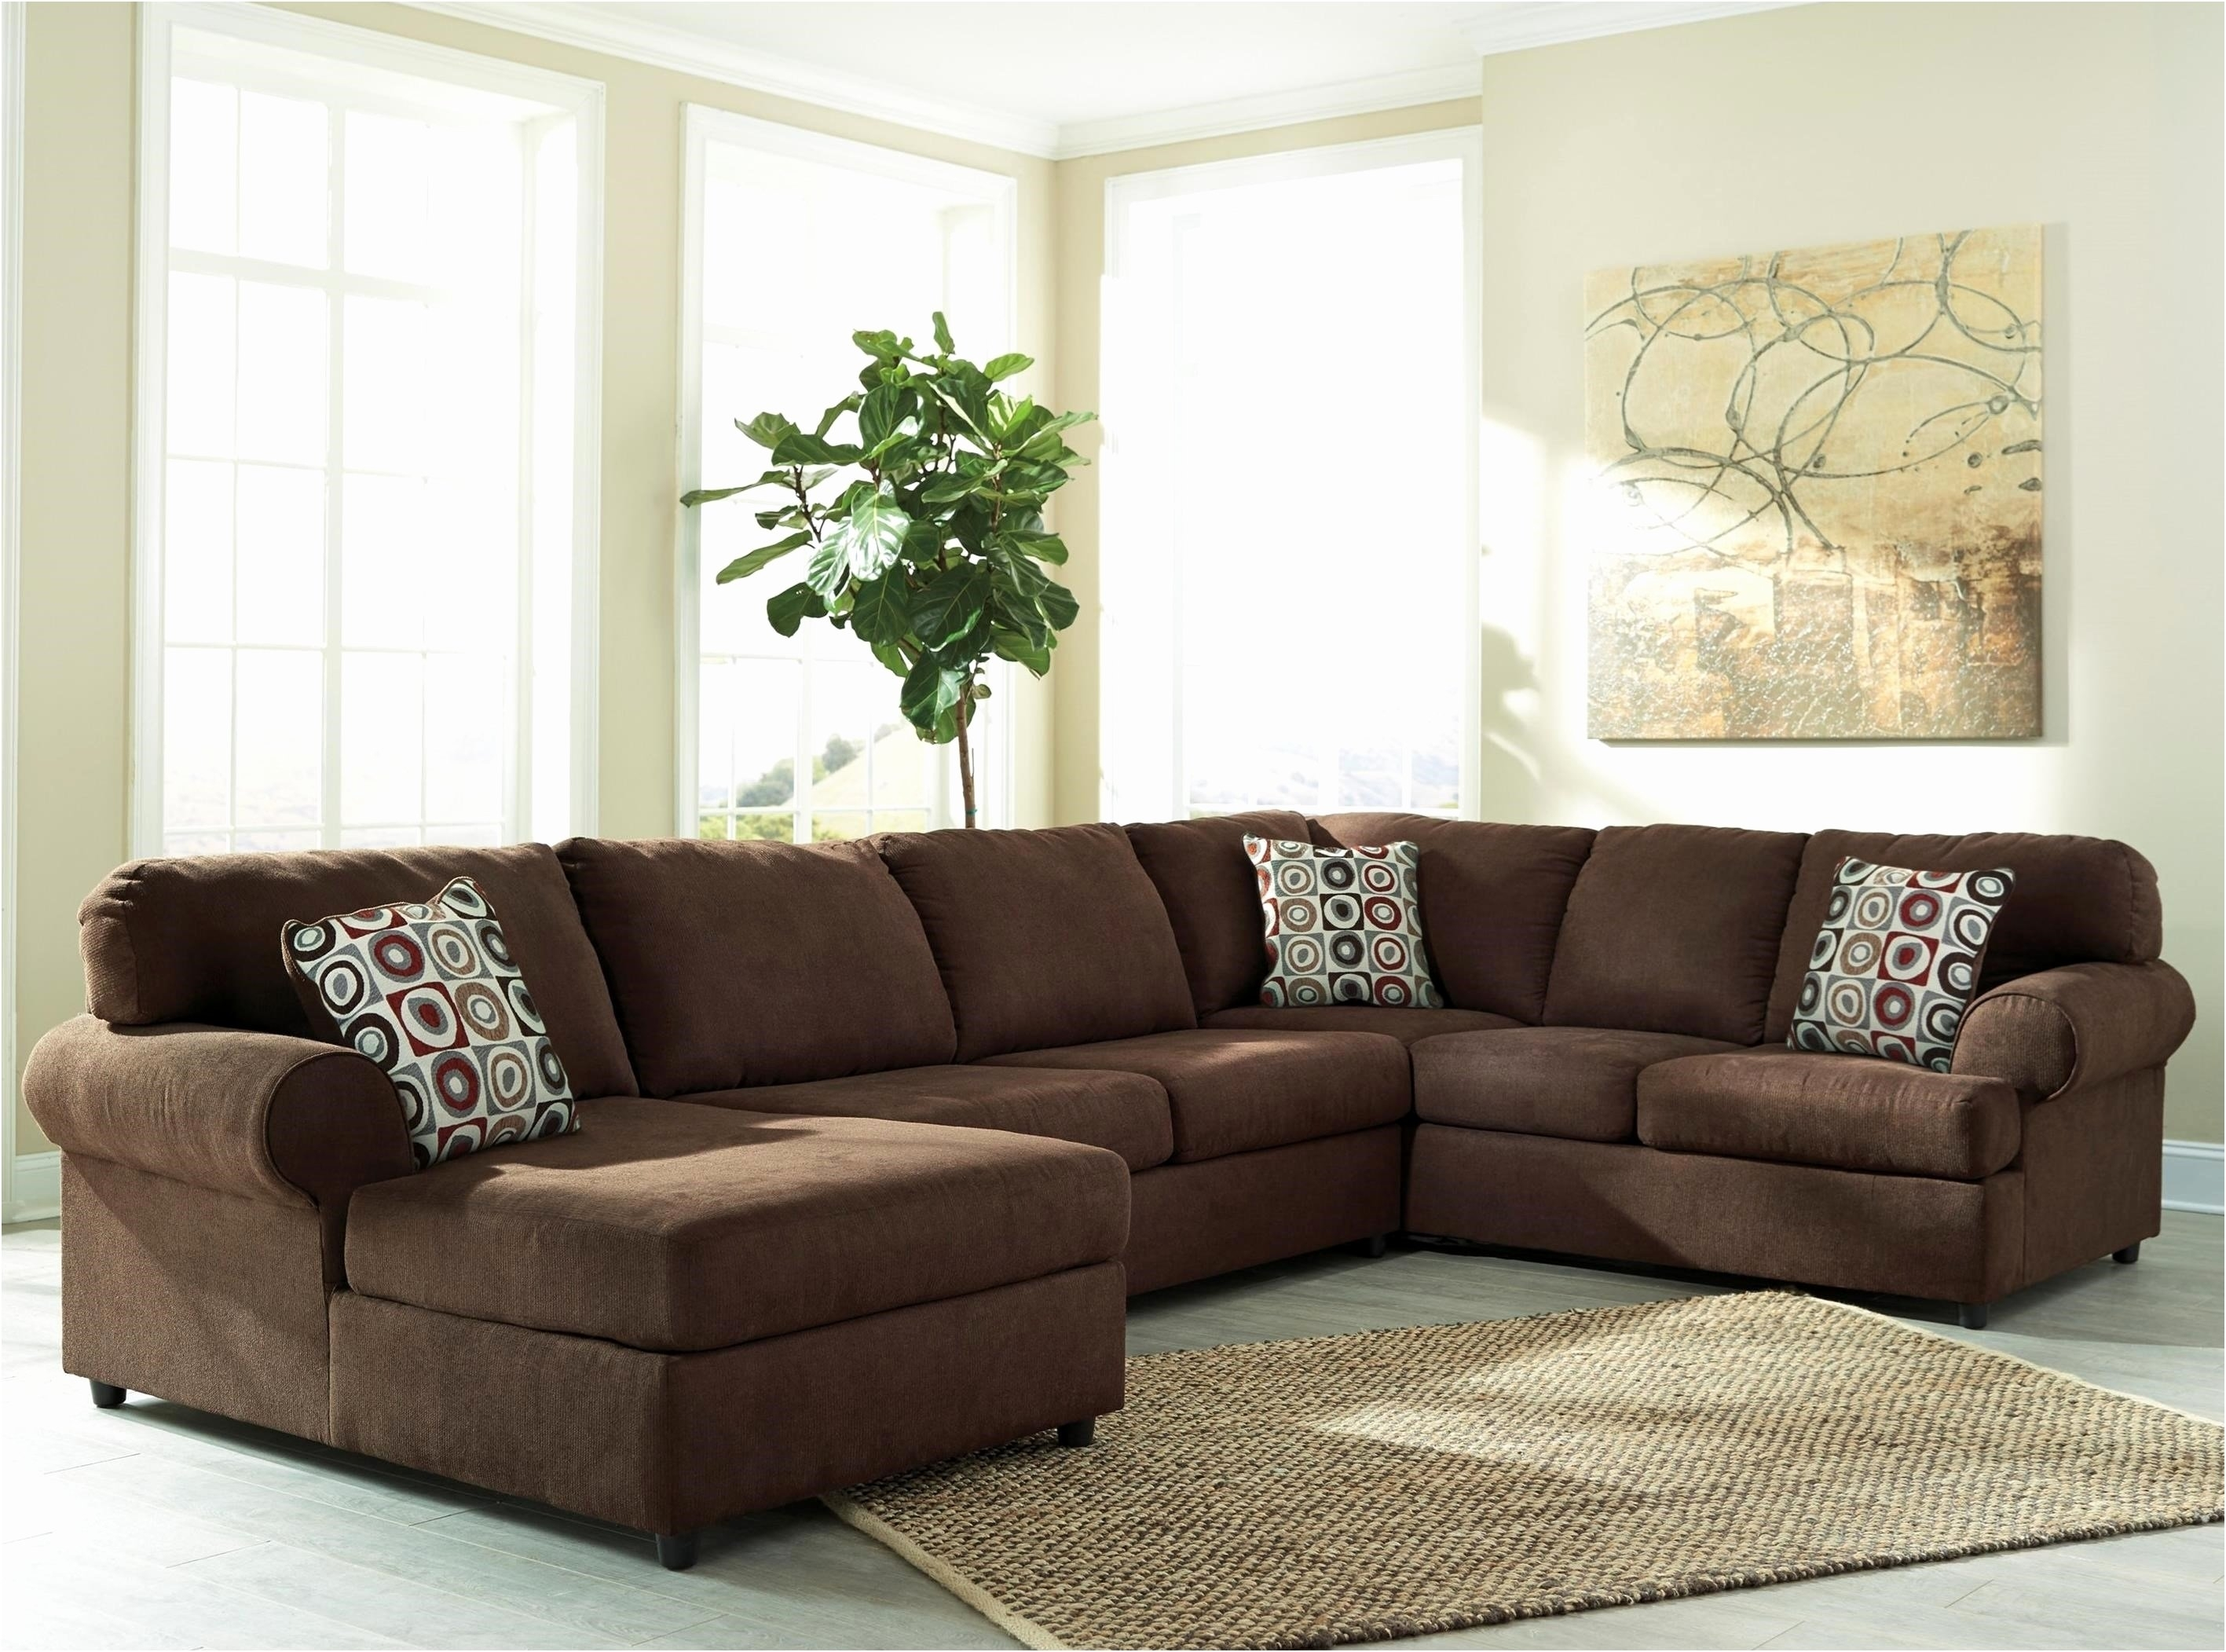 Havertys Furniture Sectionals Inspiration Probably Super Real within Arrowmask 2 Piece Sectionals With Sleeper & Left Facing Chaise (Image 11 of 30)